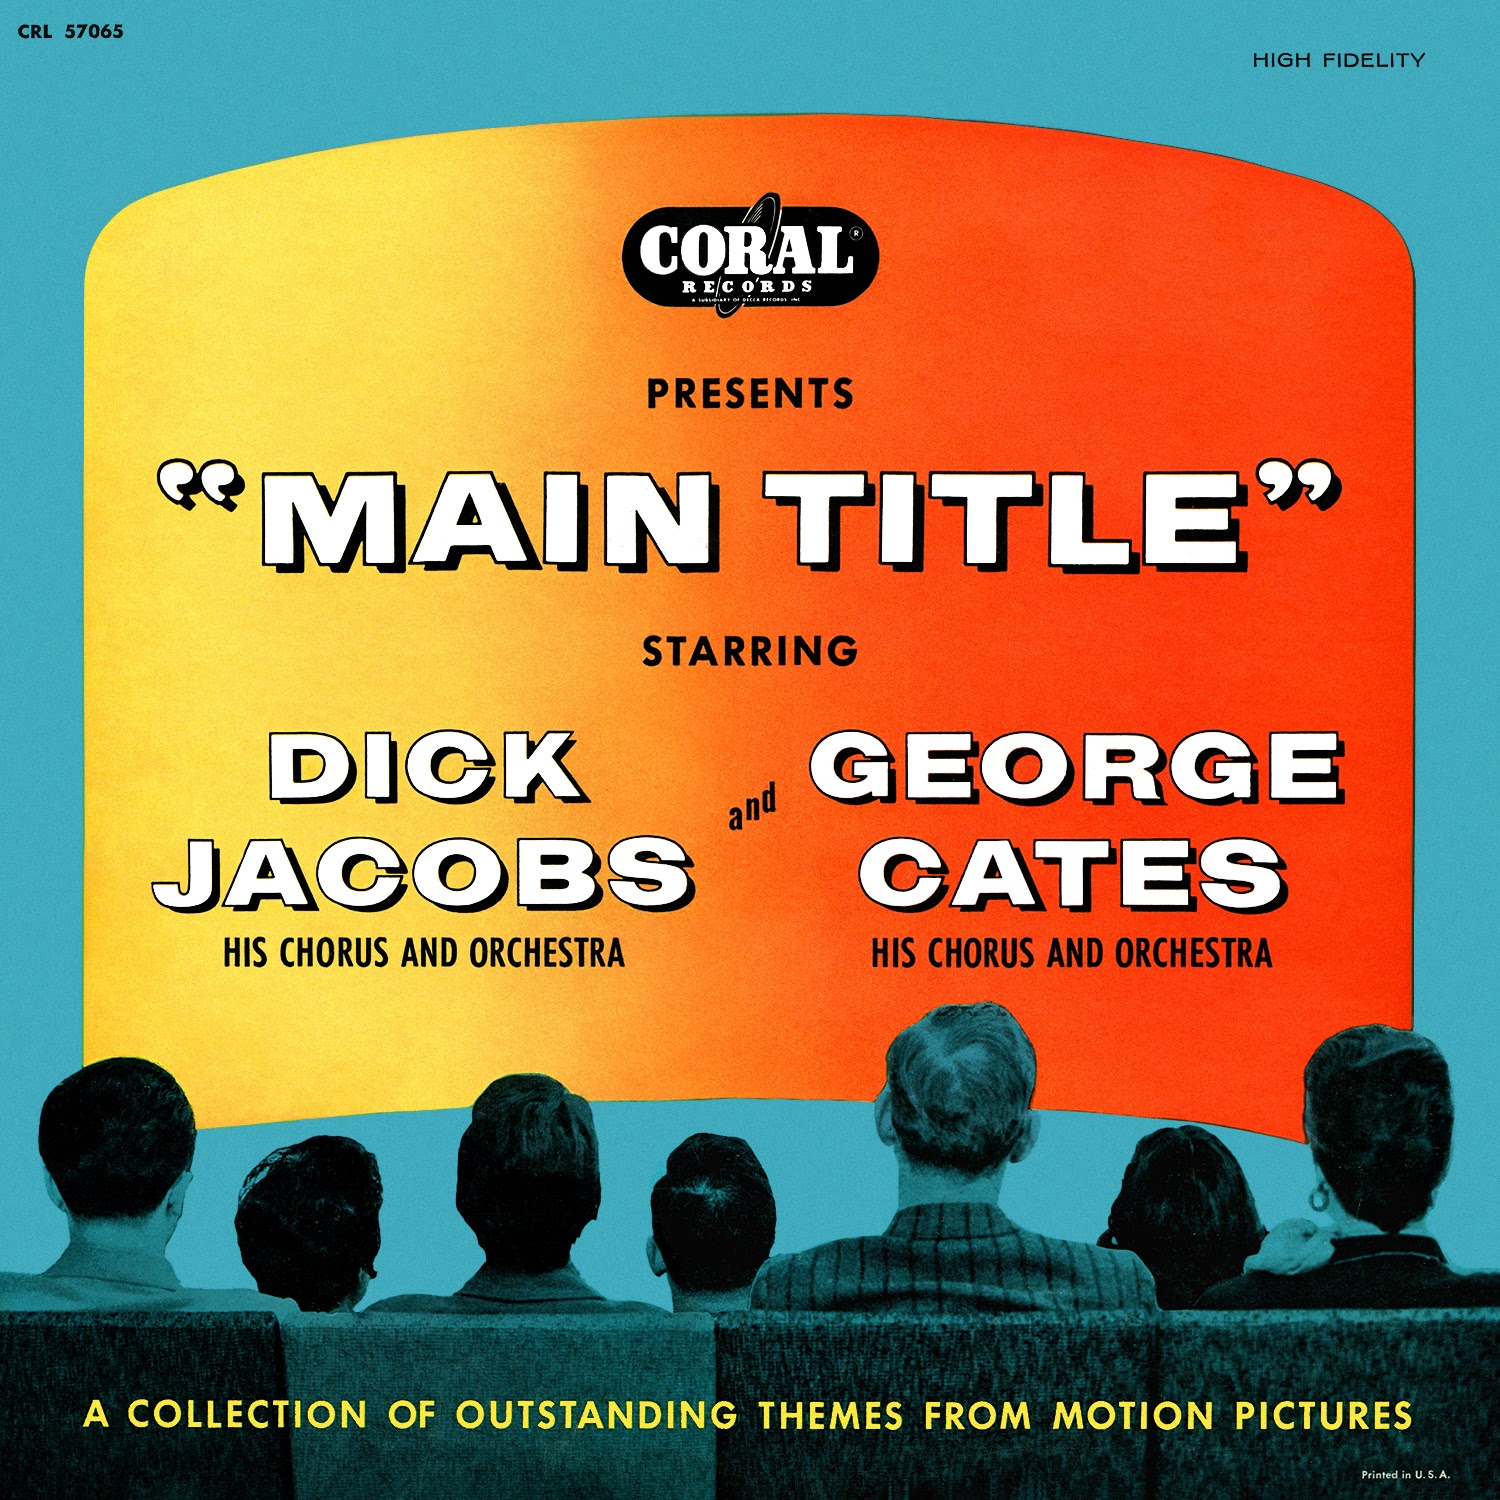 Dick Jacobs, George Cates